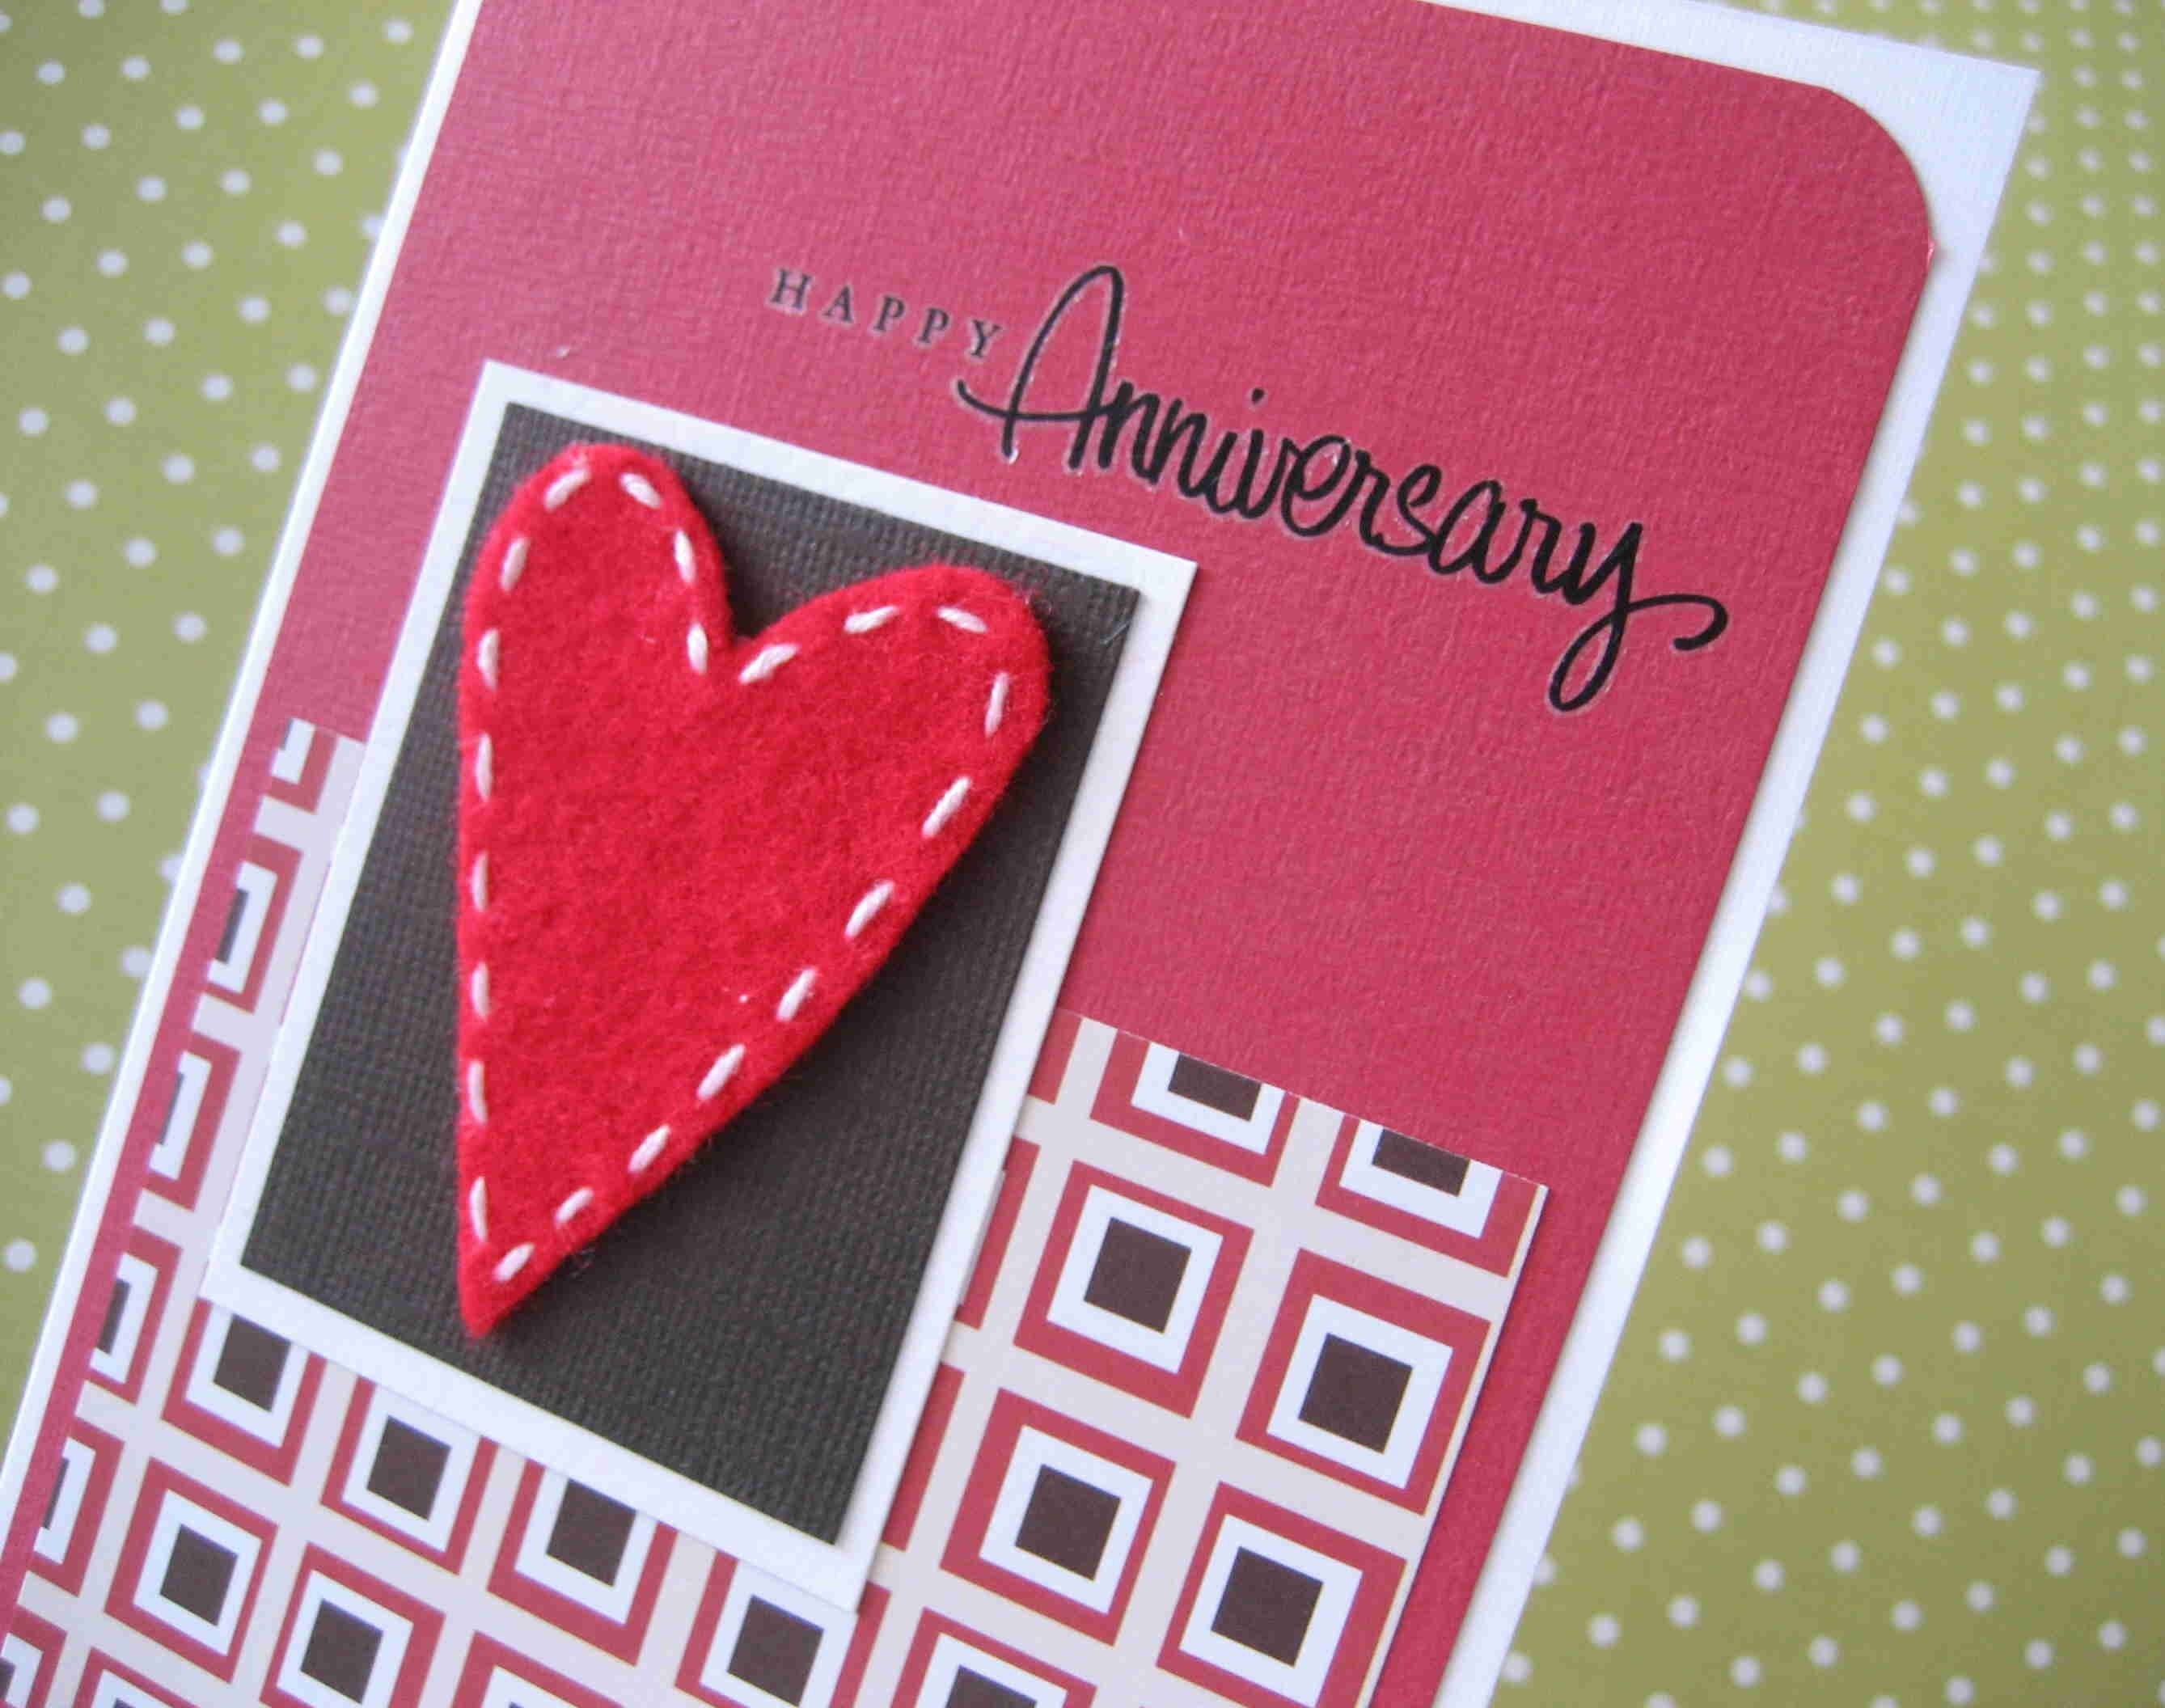 EtsyGreetings Handmade Cards: Happy Anniversary Card